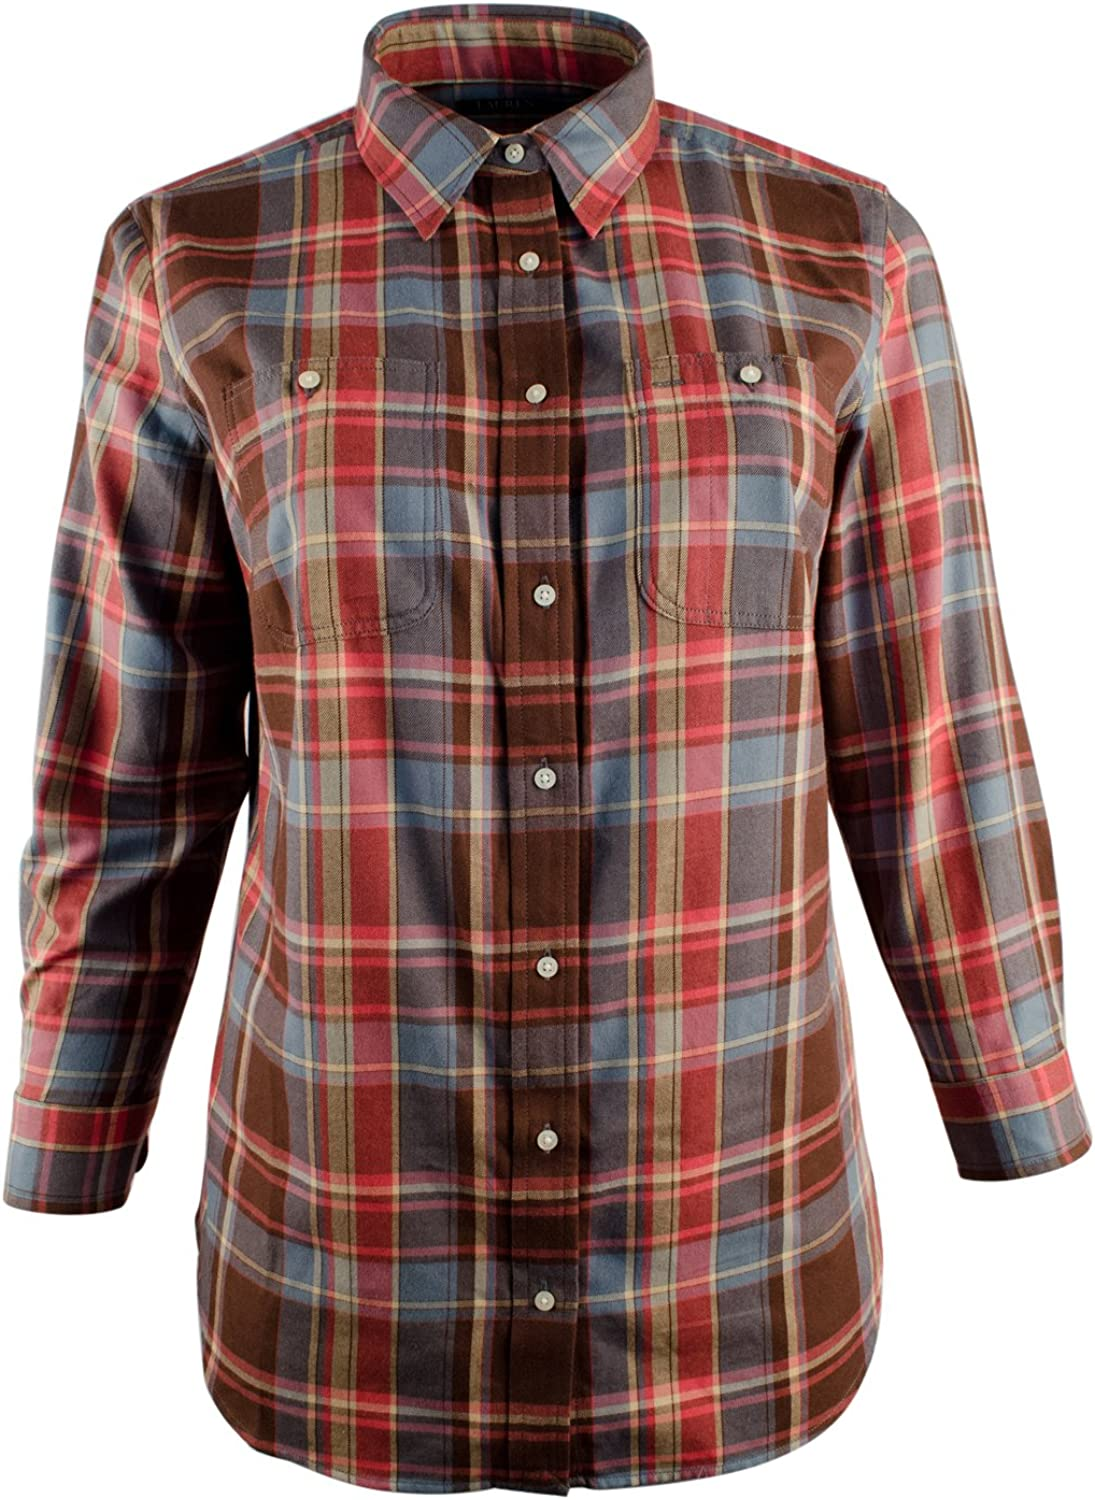 Lauren Ralph Lauren Womens Plus Plaid Long Sleeves ButtonDown Top